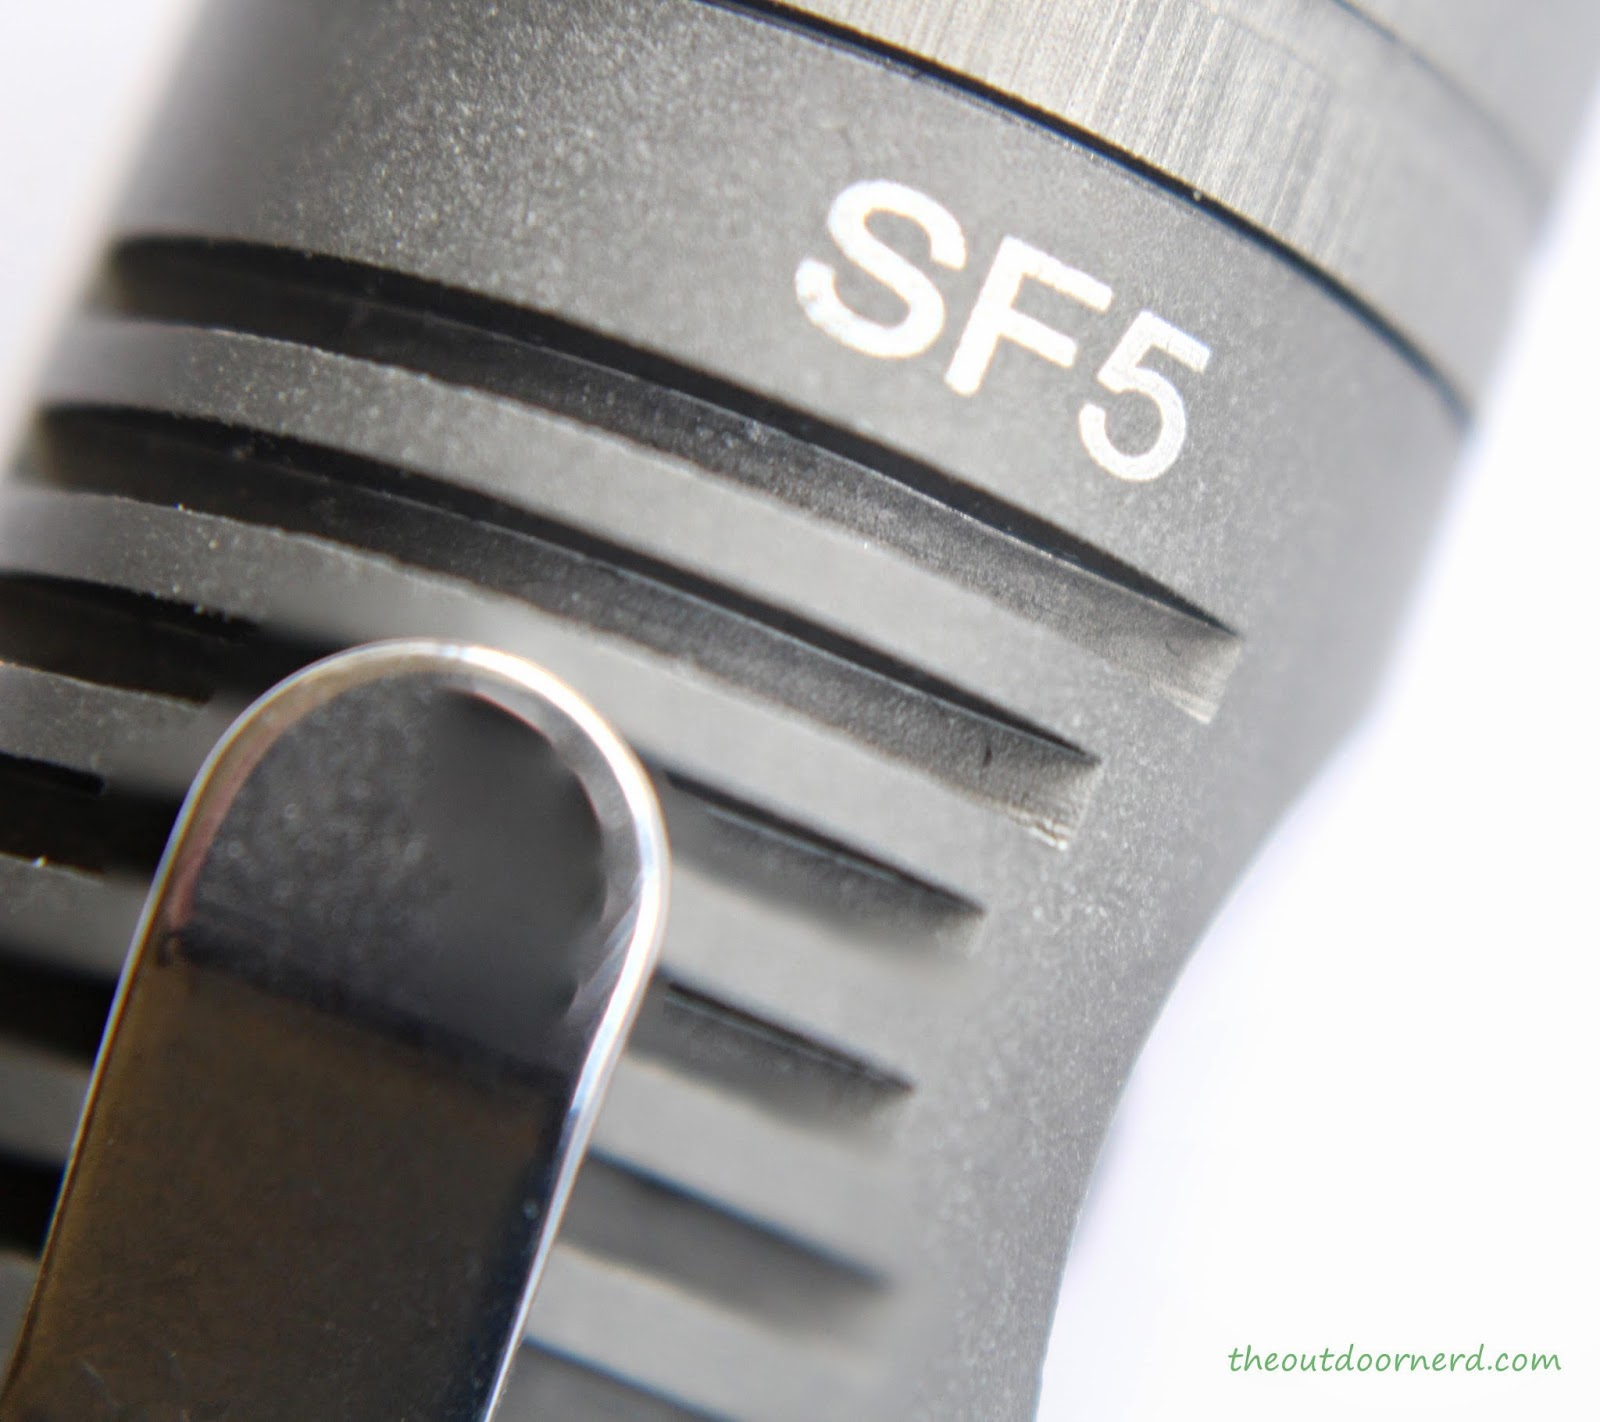 Spark SF5 1xAA Flashlight: Closeup Of Logo